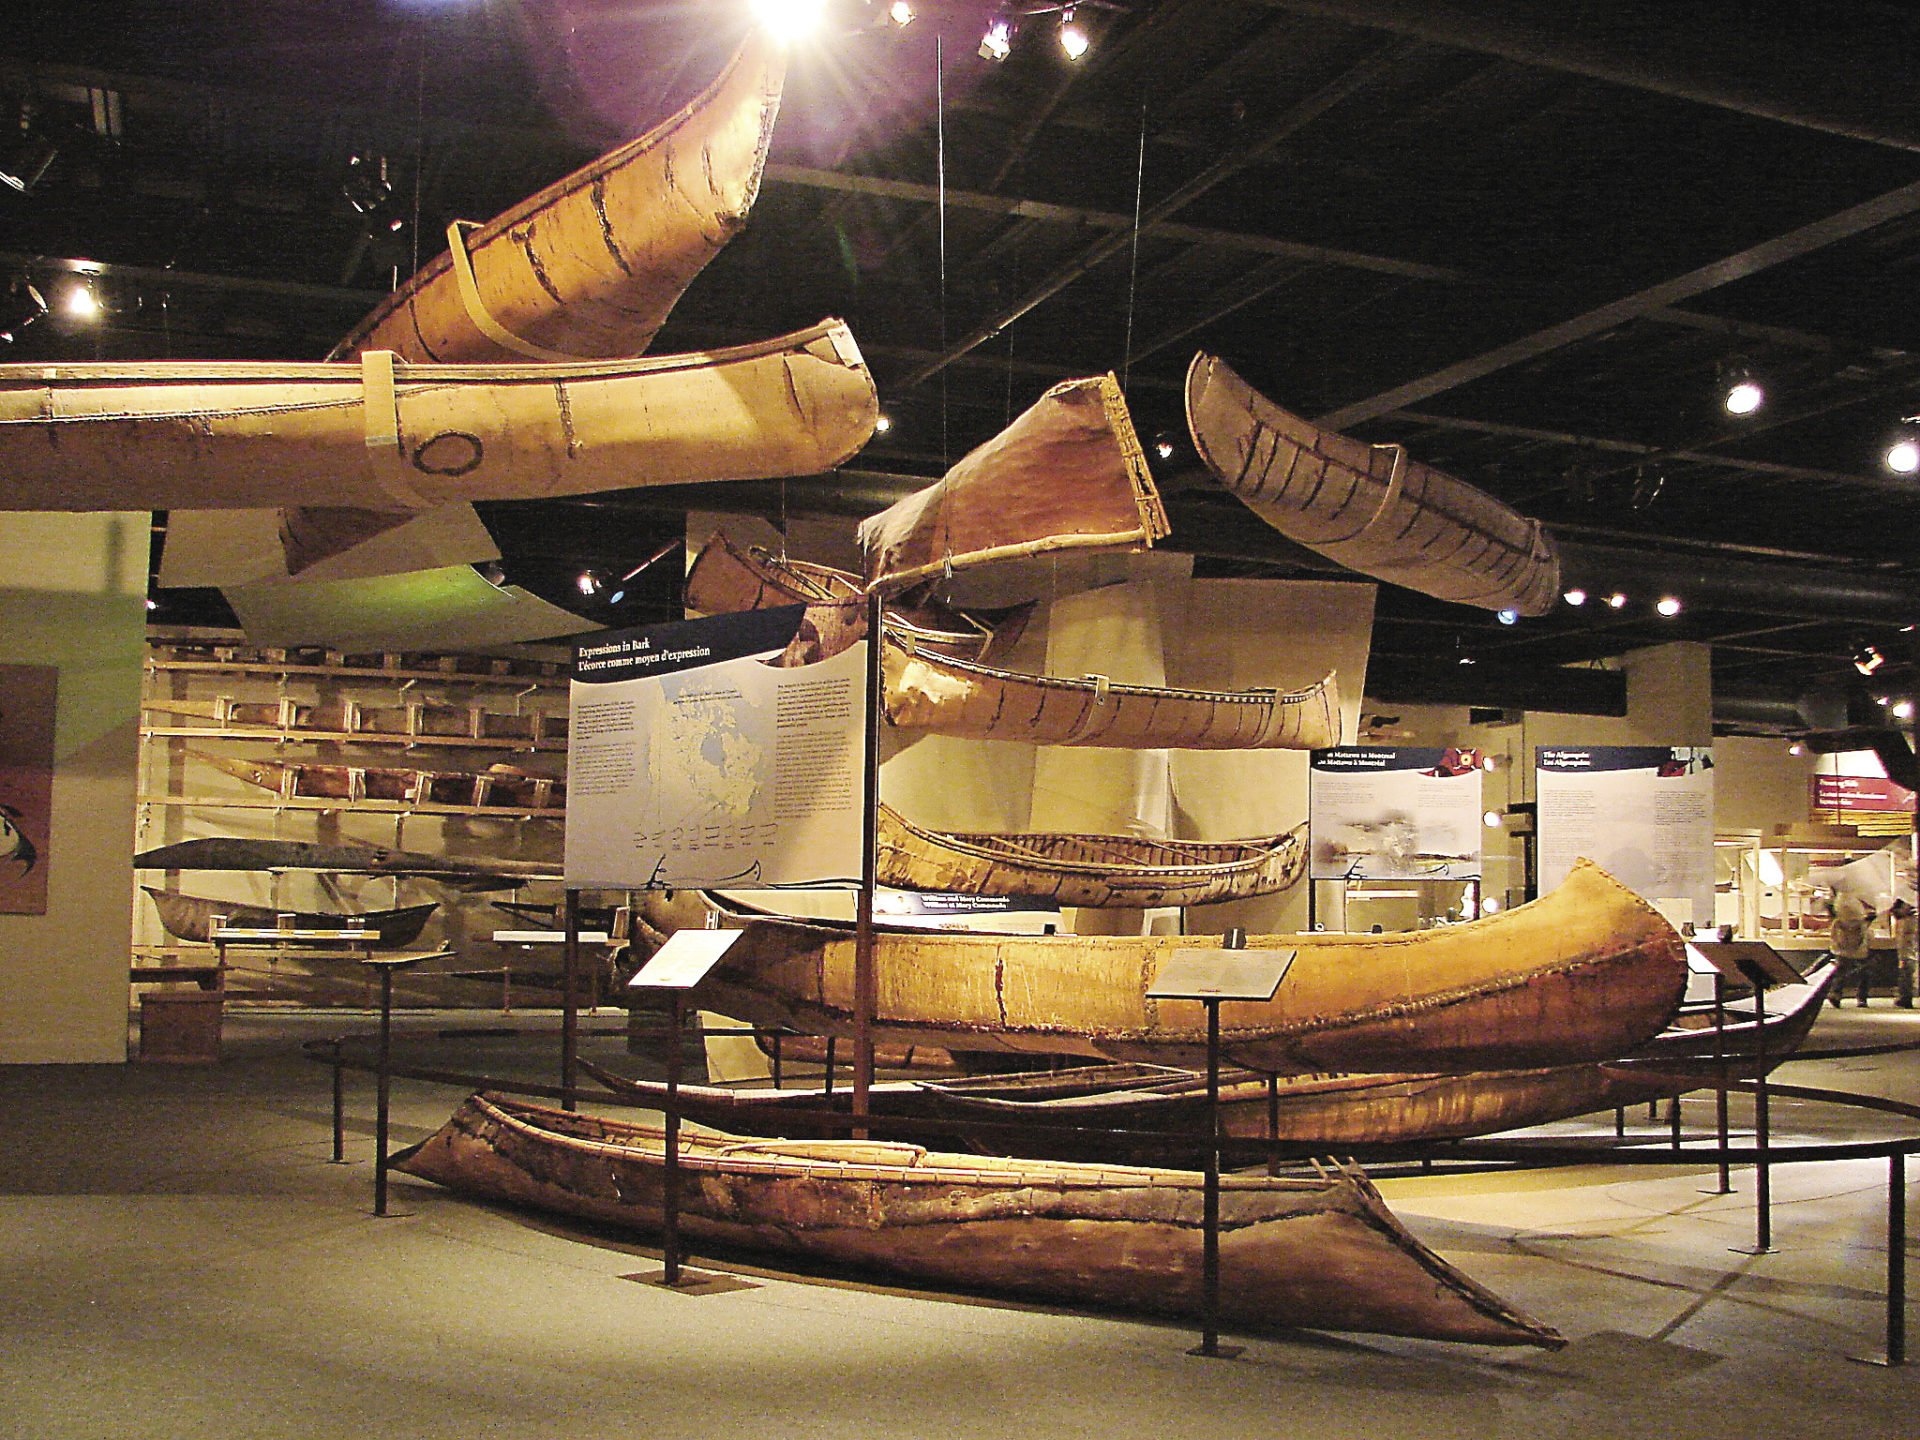 The Canadian Canoe Museum in Peterborough, Ontario, houses the world's largest collection of canoes, kayaks and self-propelled watercraft.